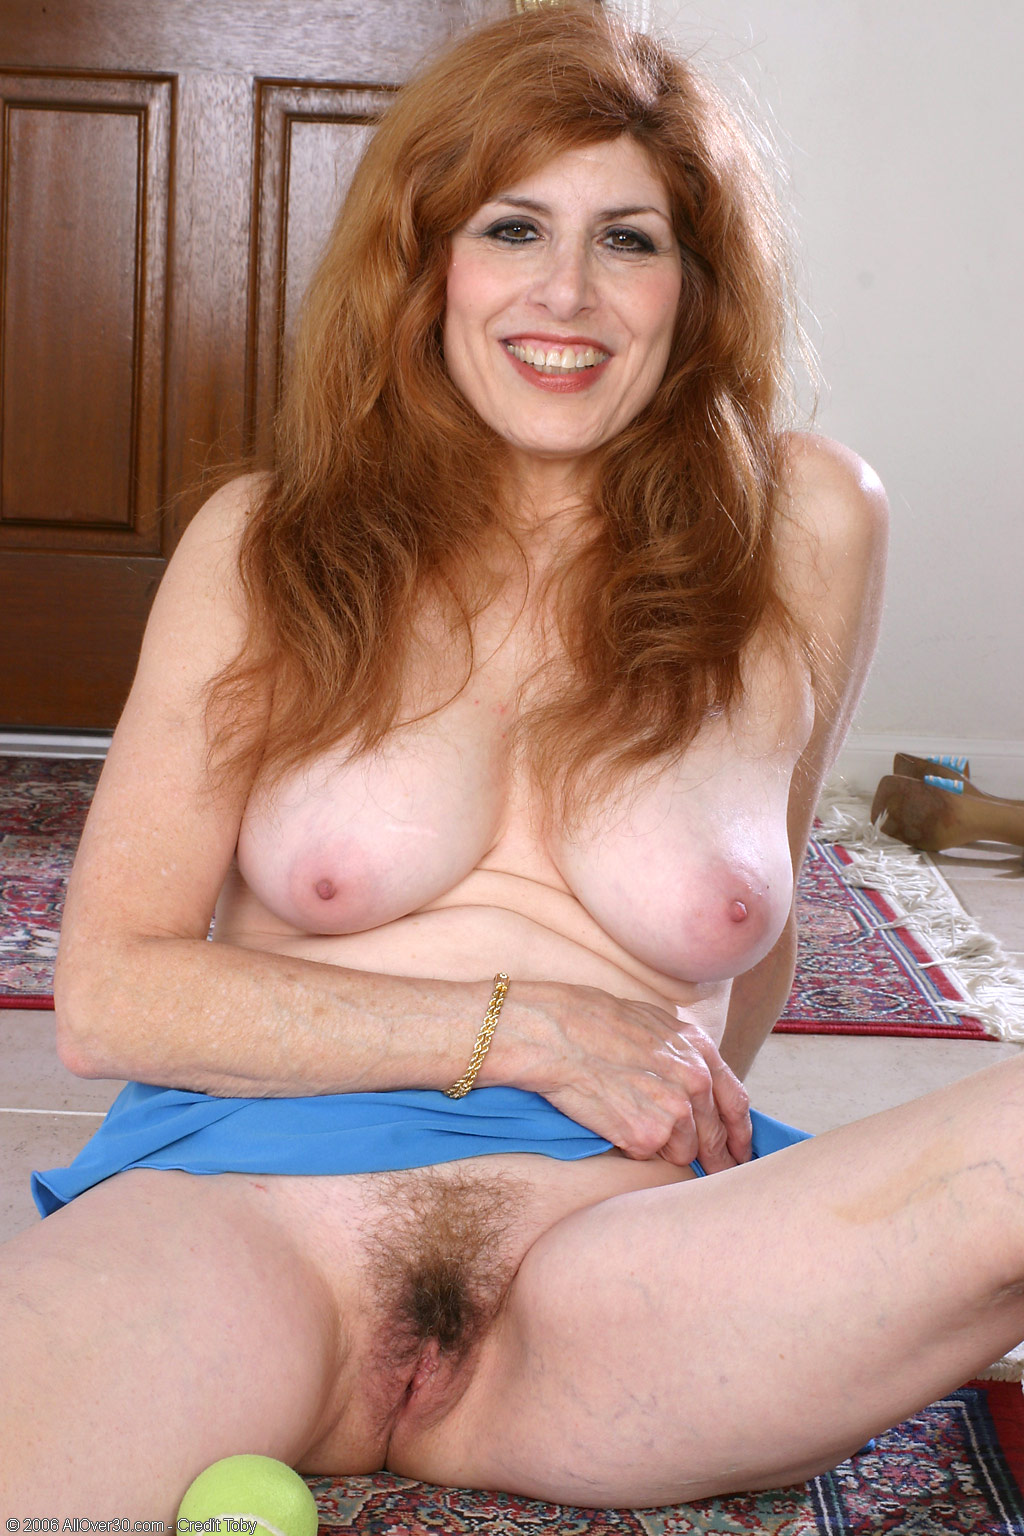 Pictures of redhead women spreading